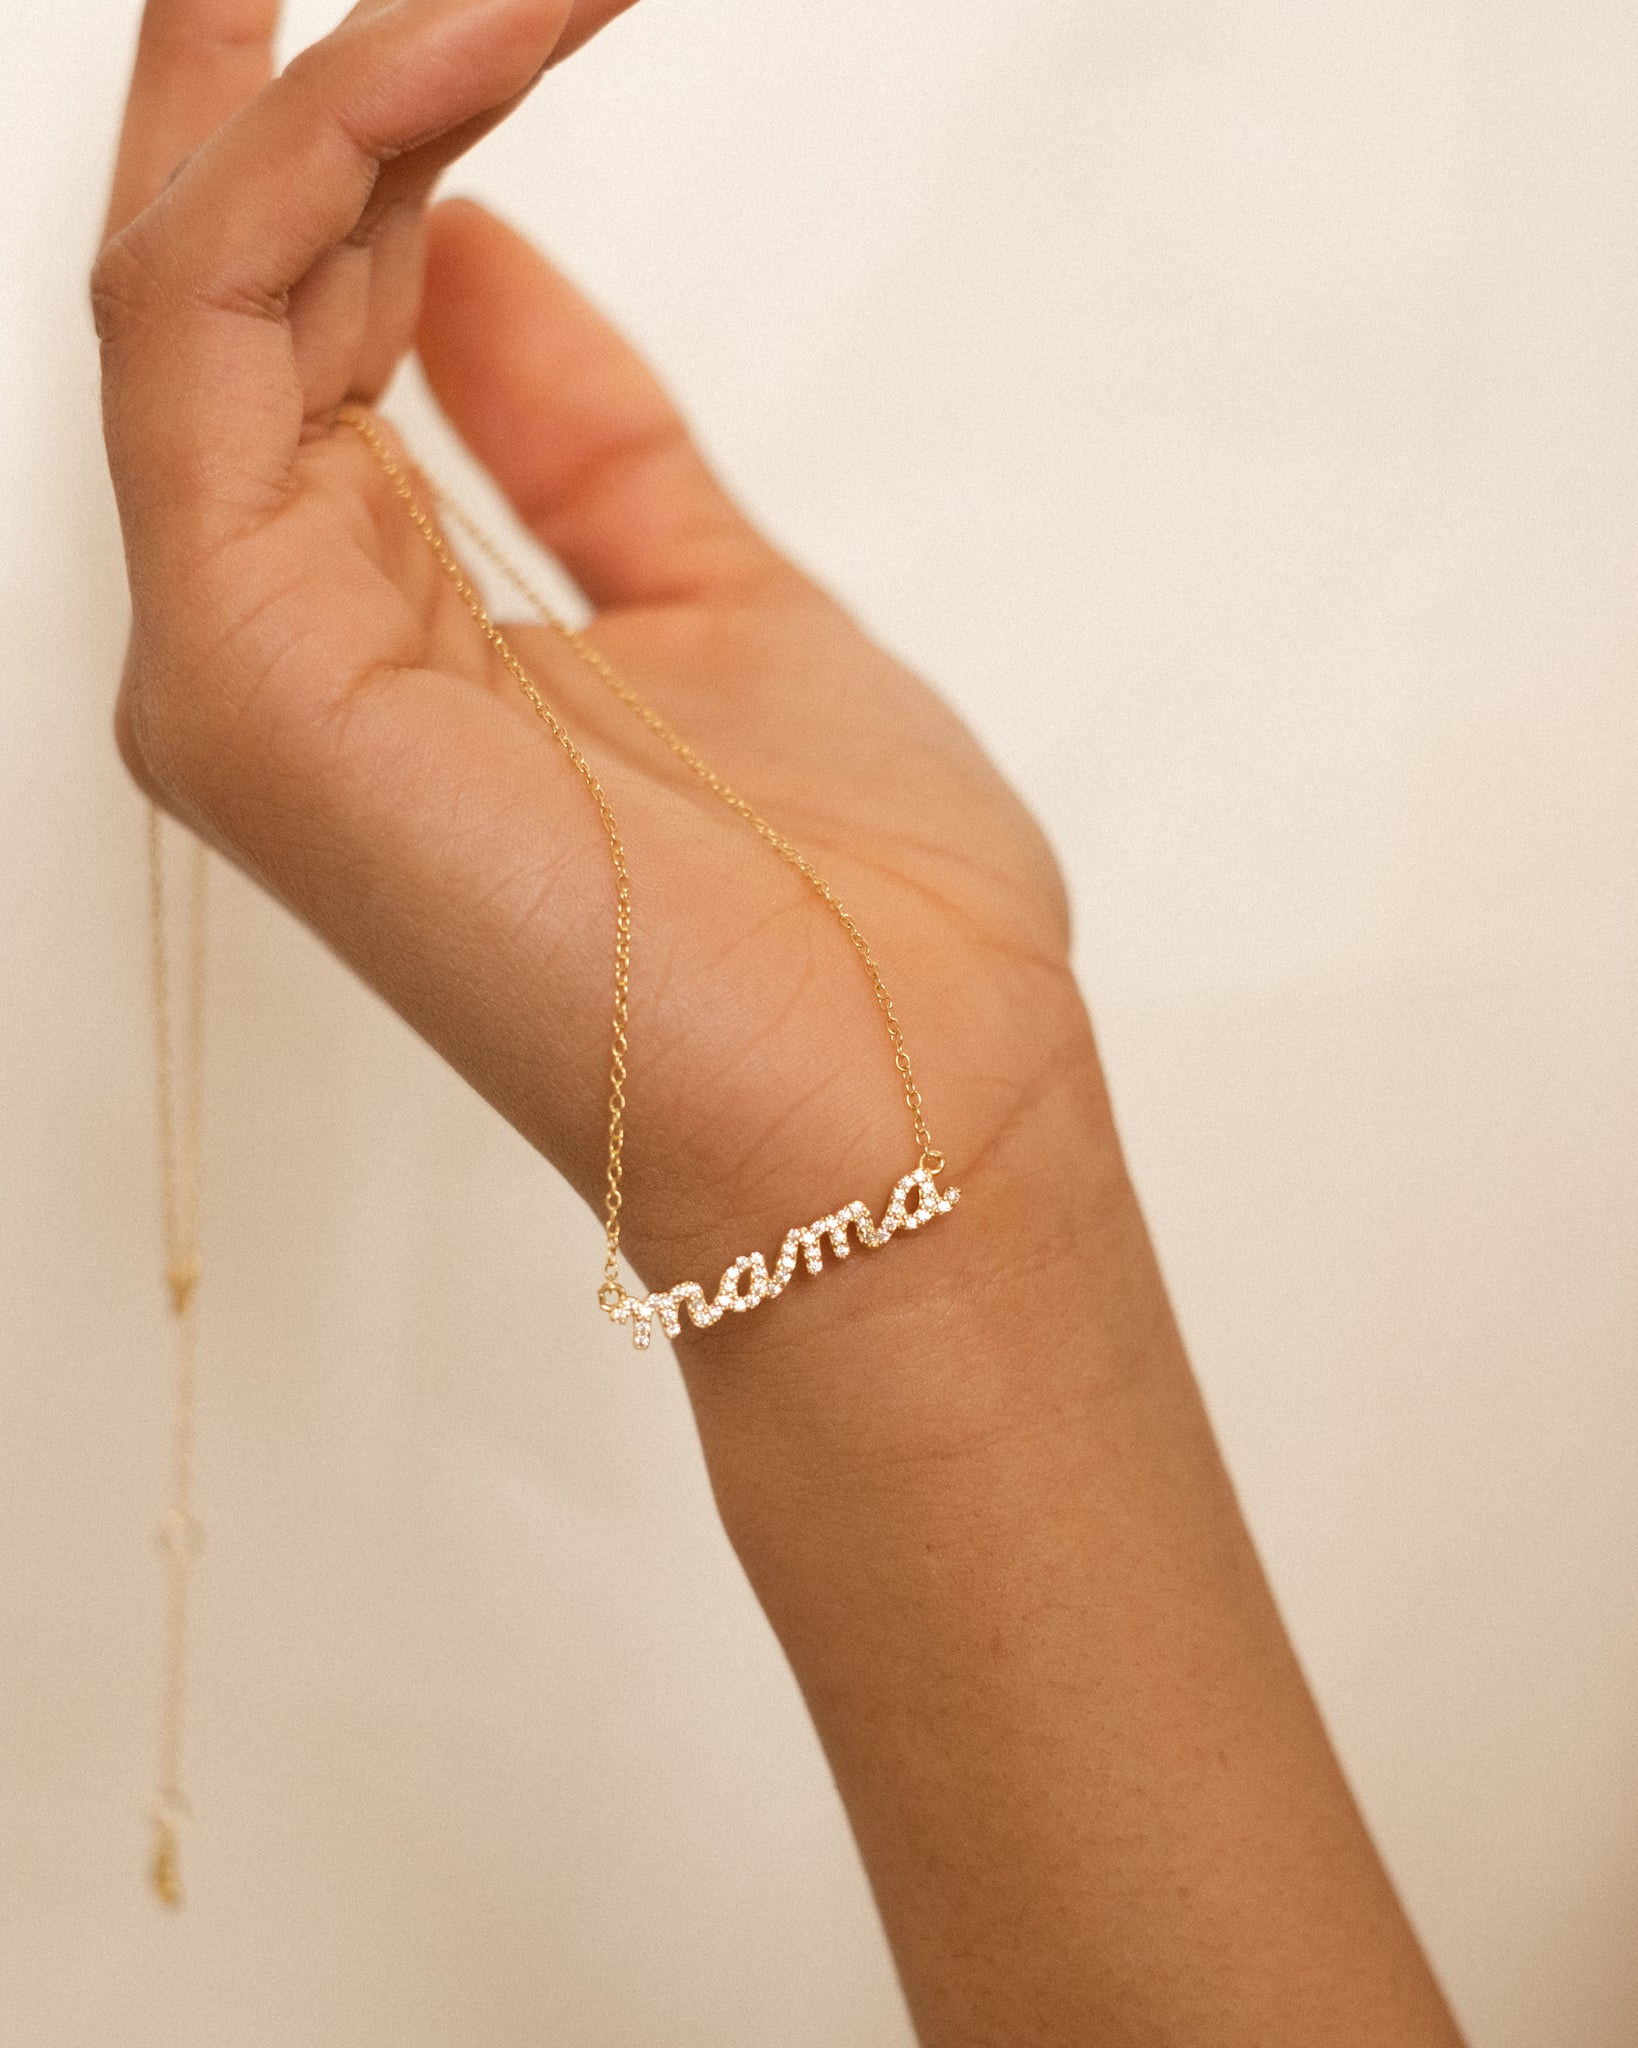 pave mama necklace, pave script necklace, mama script necklace, pave script mama necklace, mother script necklace, mother's day jewelry, mother's day necklace, mama necklace, mother necklace, mother's day gift, sterling silver jewelry, 18k gold, dainty jewelry, dainty necklaces, mother necklace, necklace for mother, birthday gift, mama letter necklace